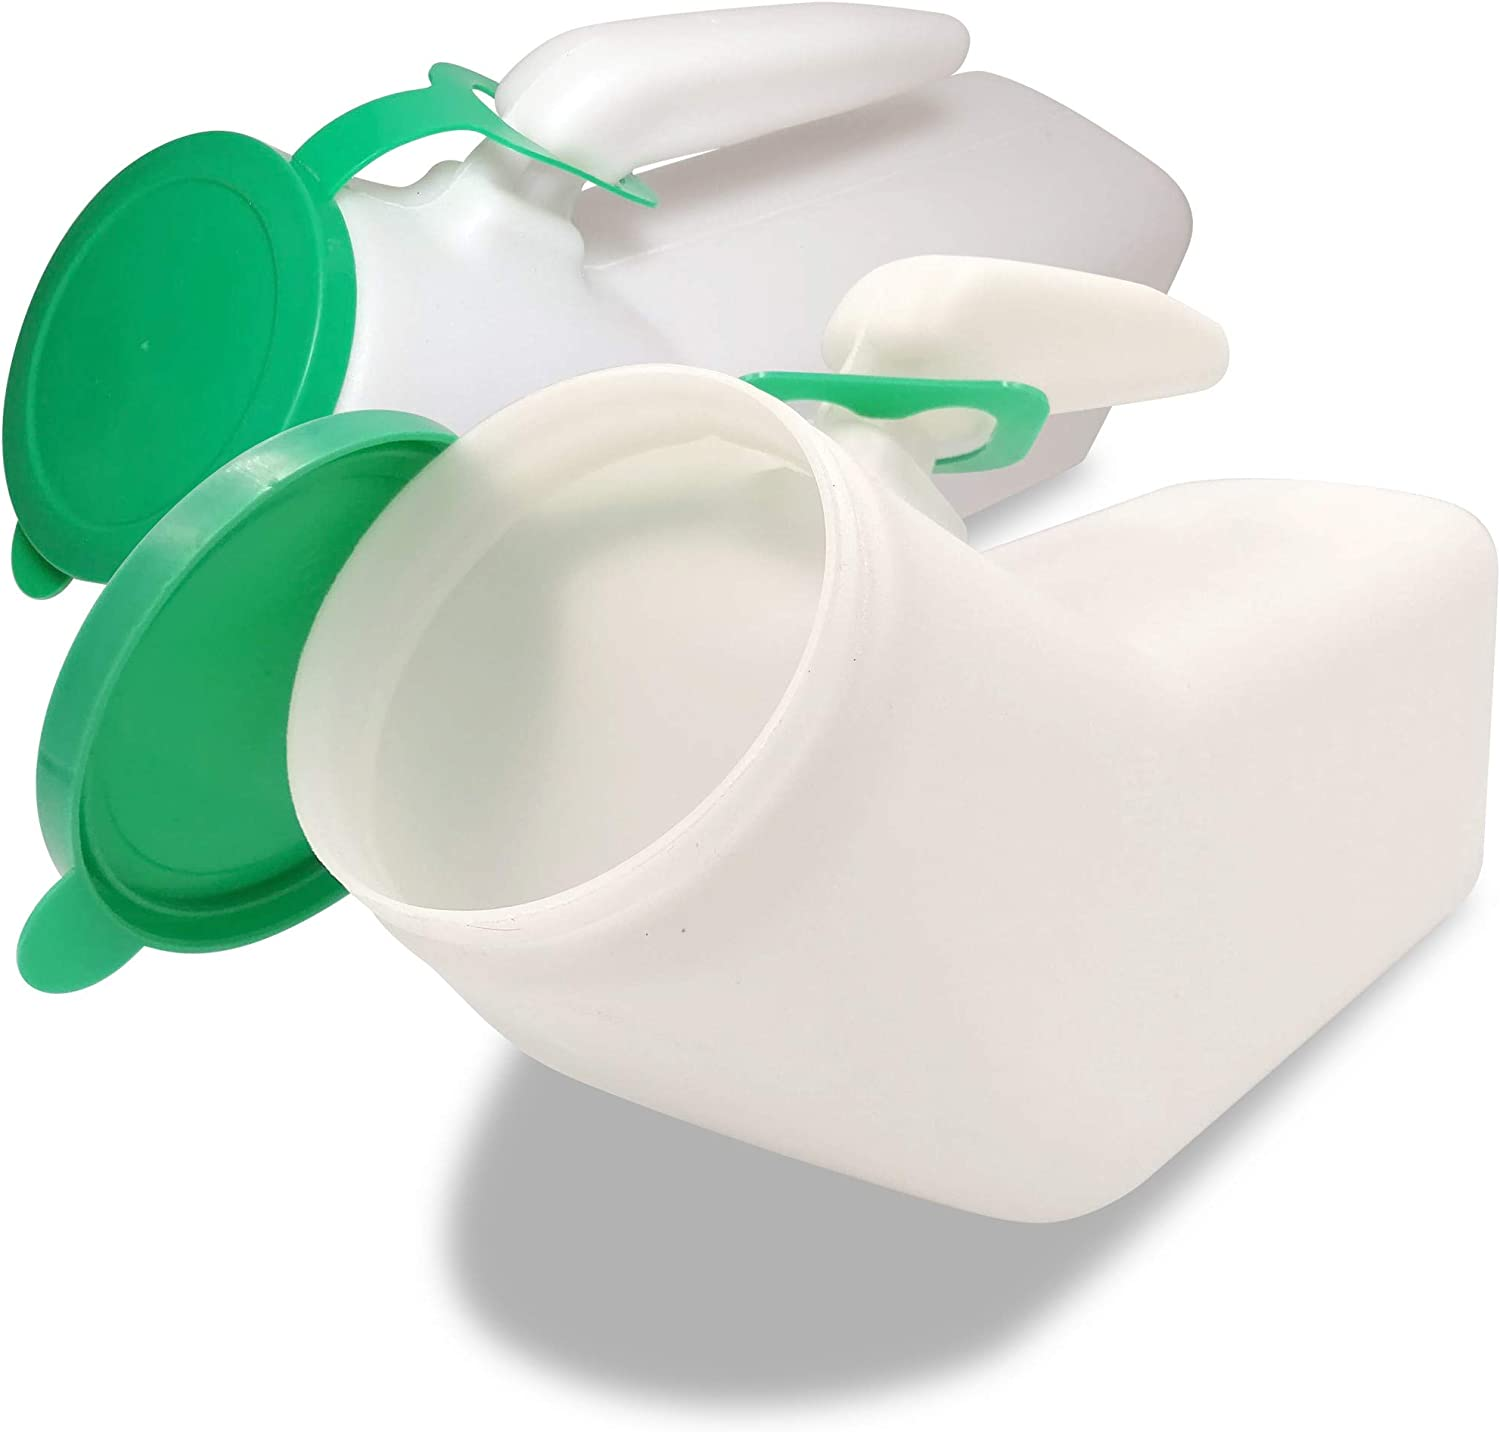 JJ CARE Urinals for Men 1000ml Special price for a limited time Pack Pee At the price of surprise Proof 2 Plastic Spill